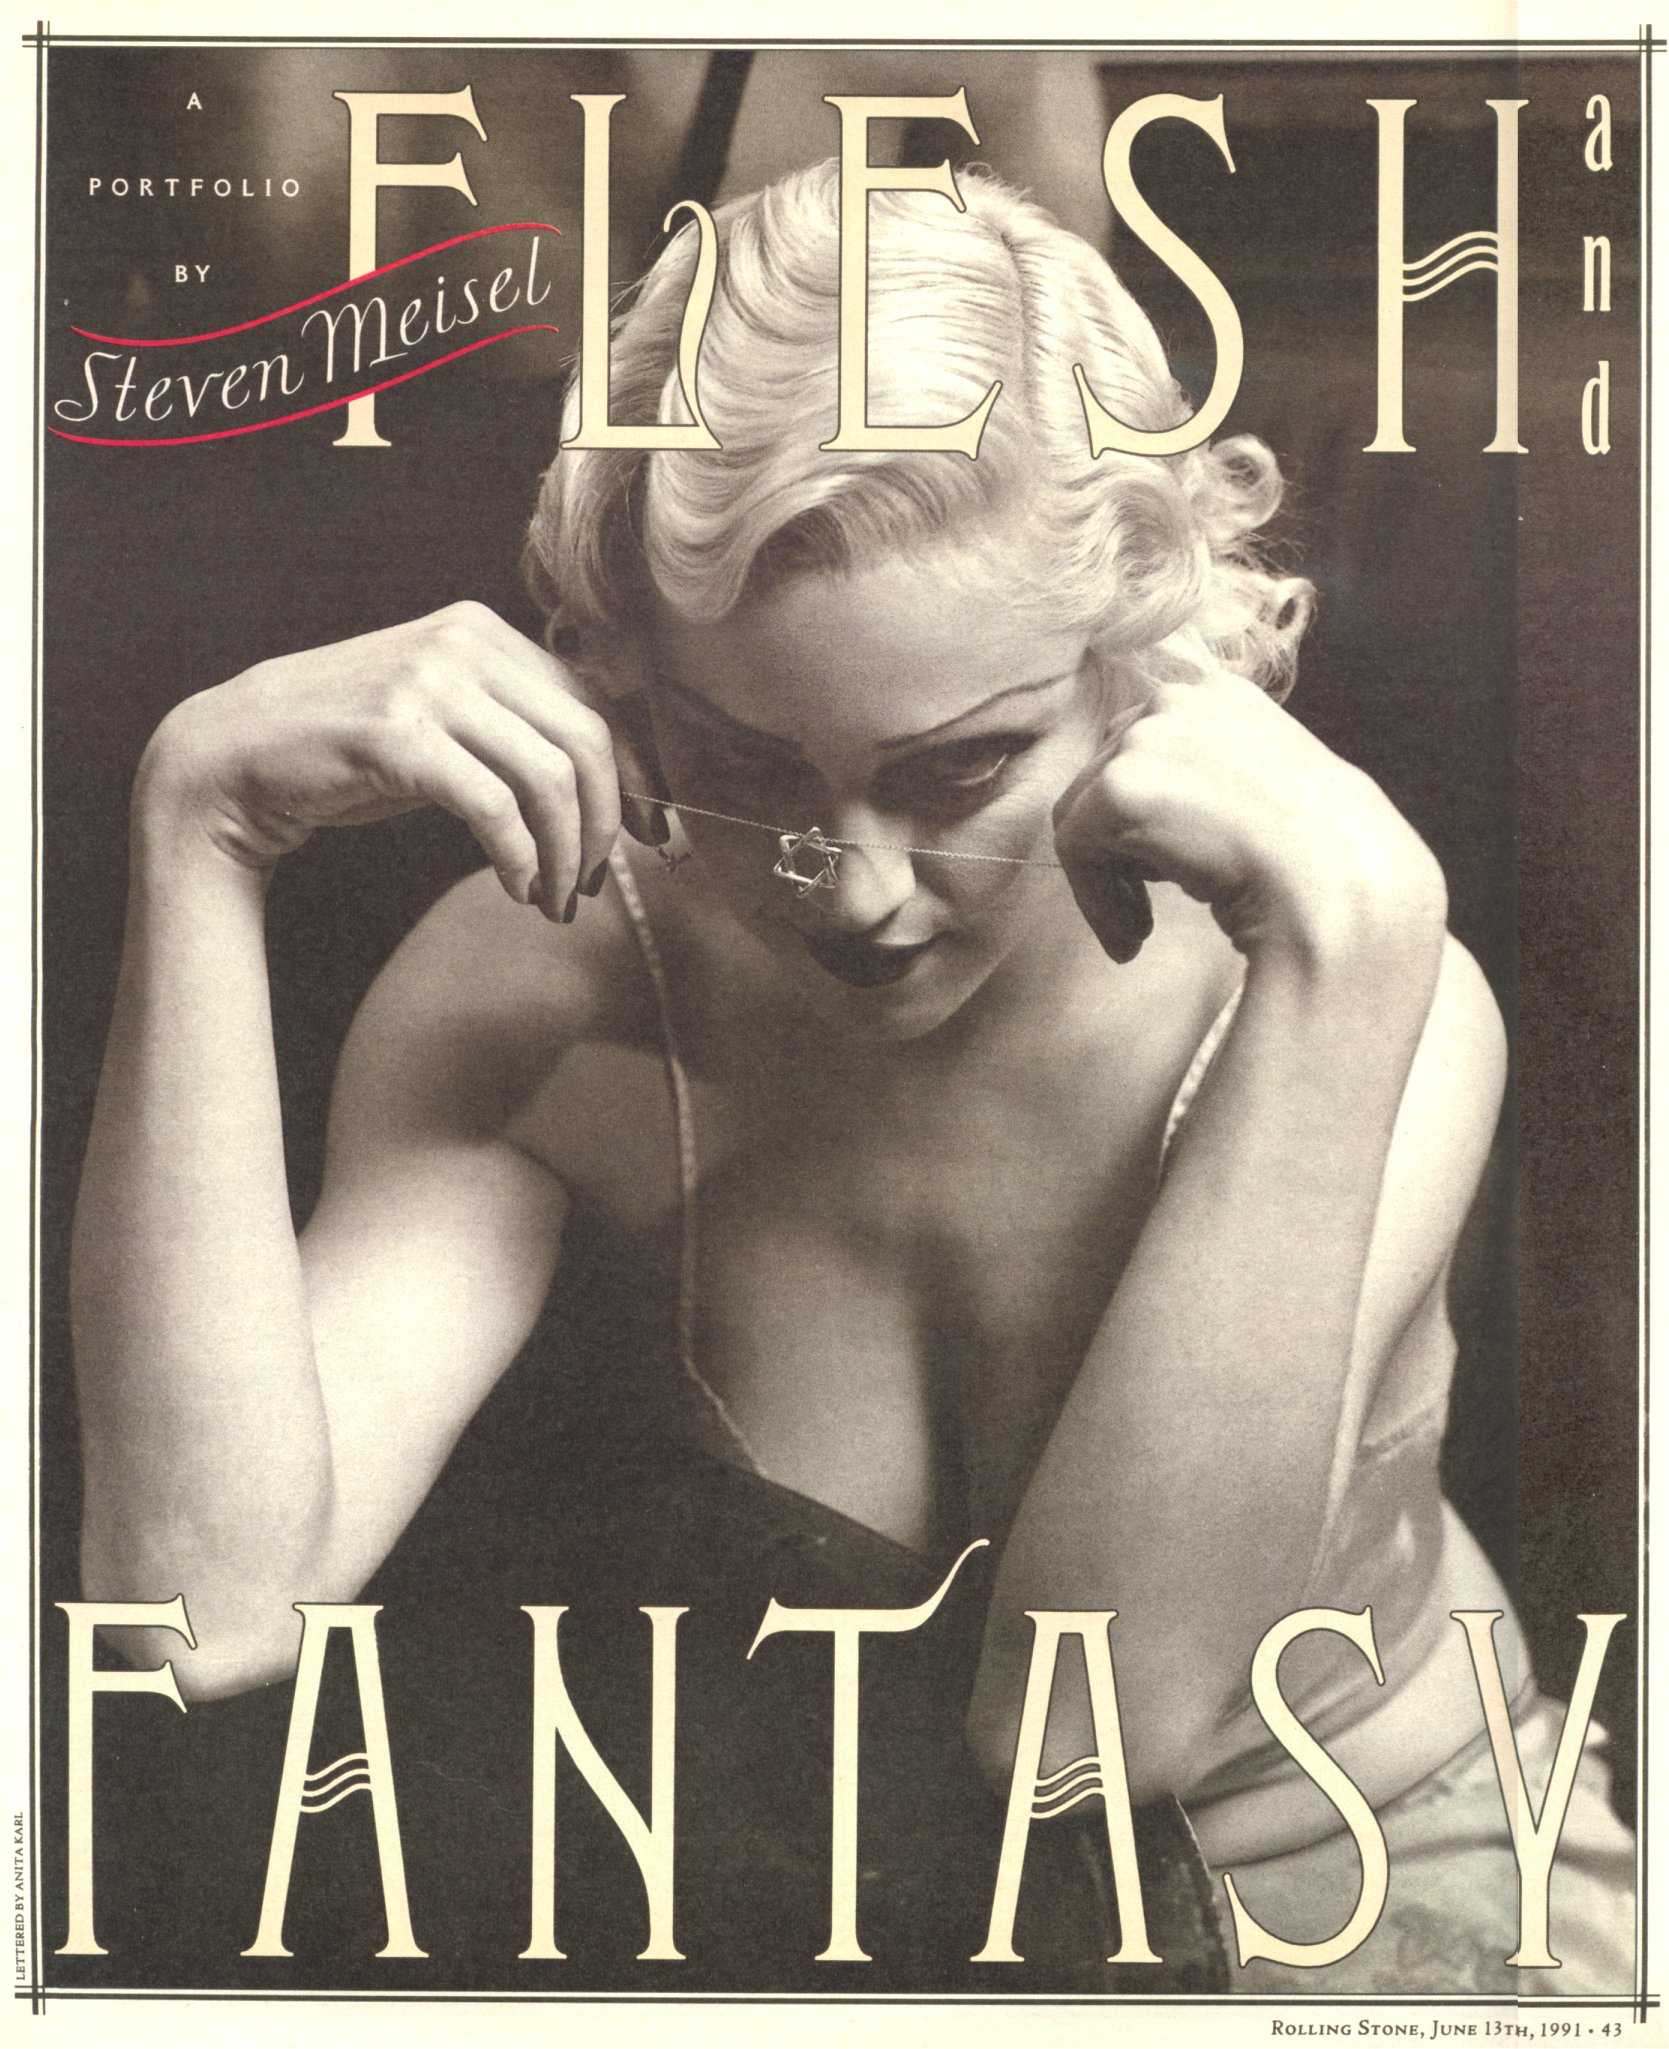 madonna-rolling-stone-1991-meisel-03